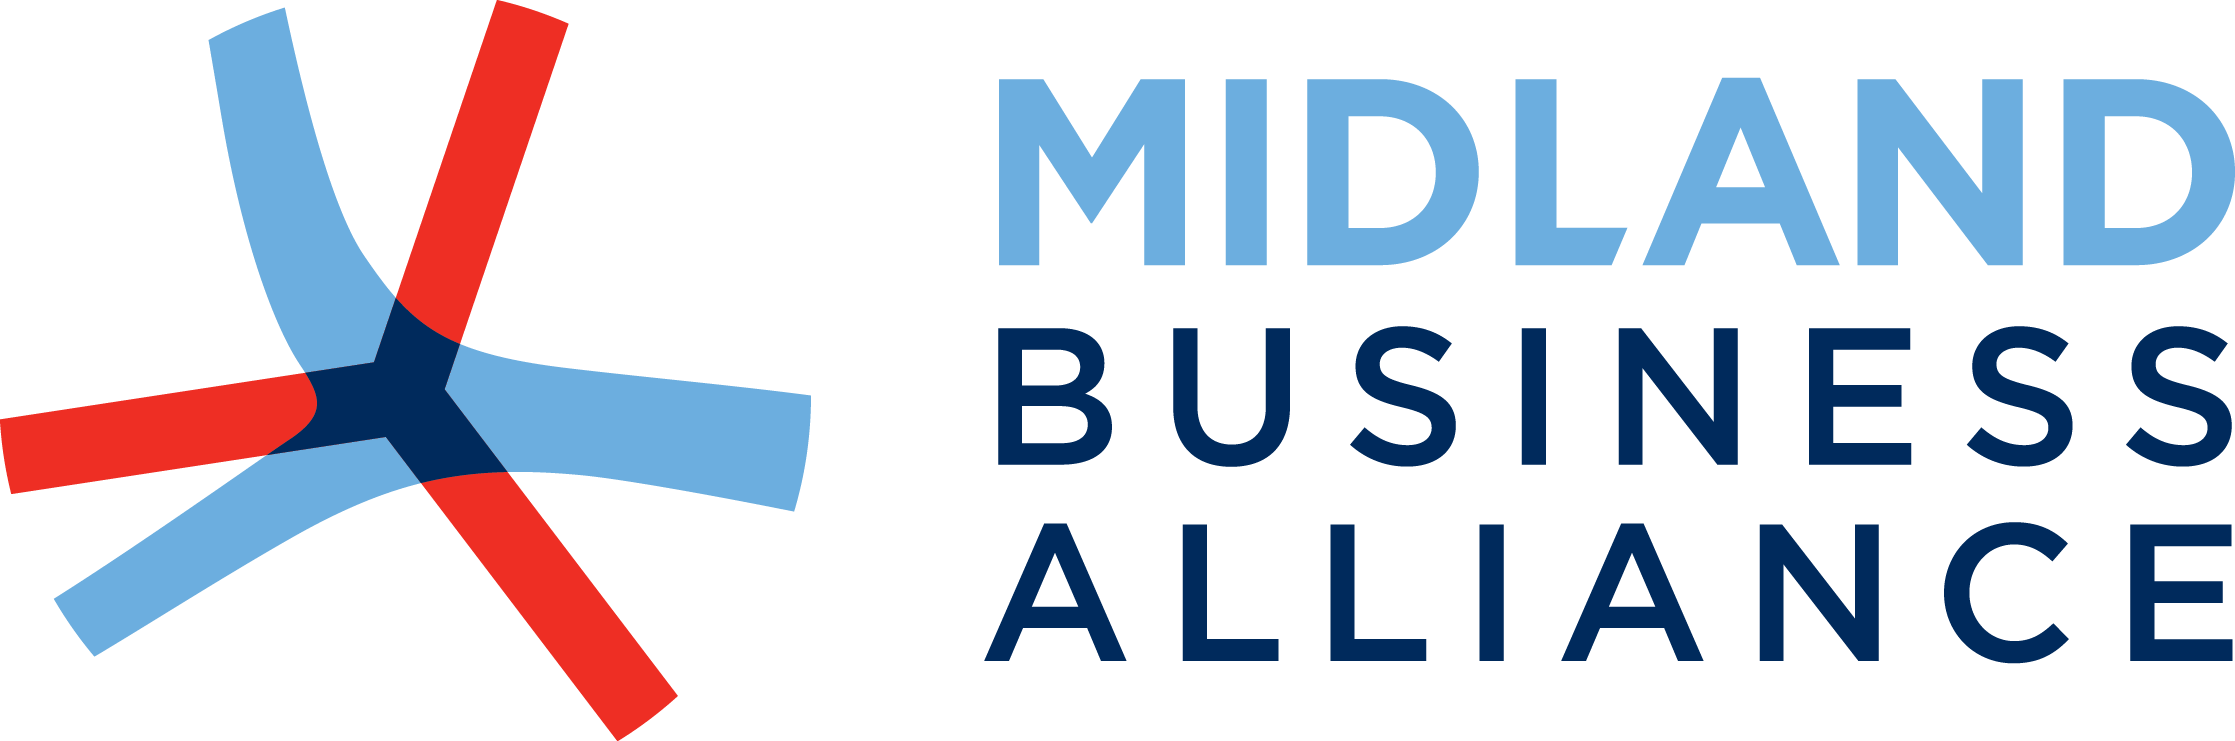 MidlandBusinessAlliance_Logo_3c.png